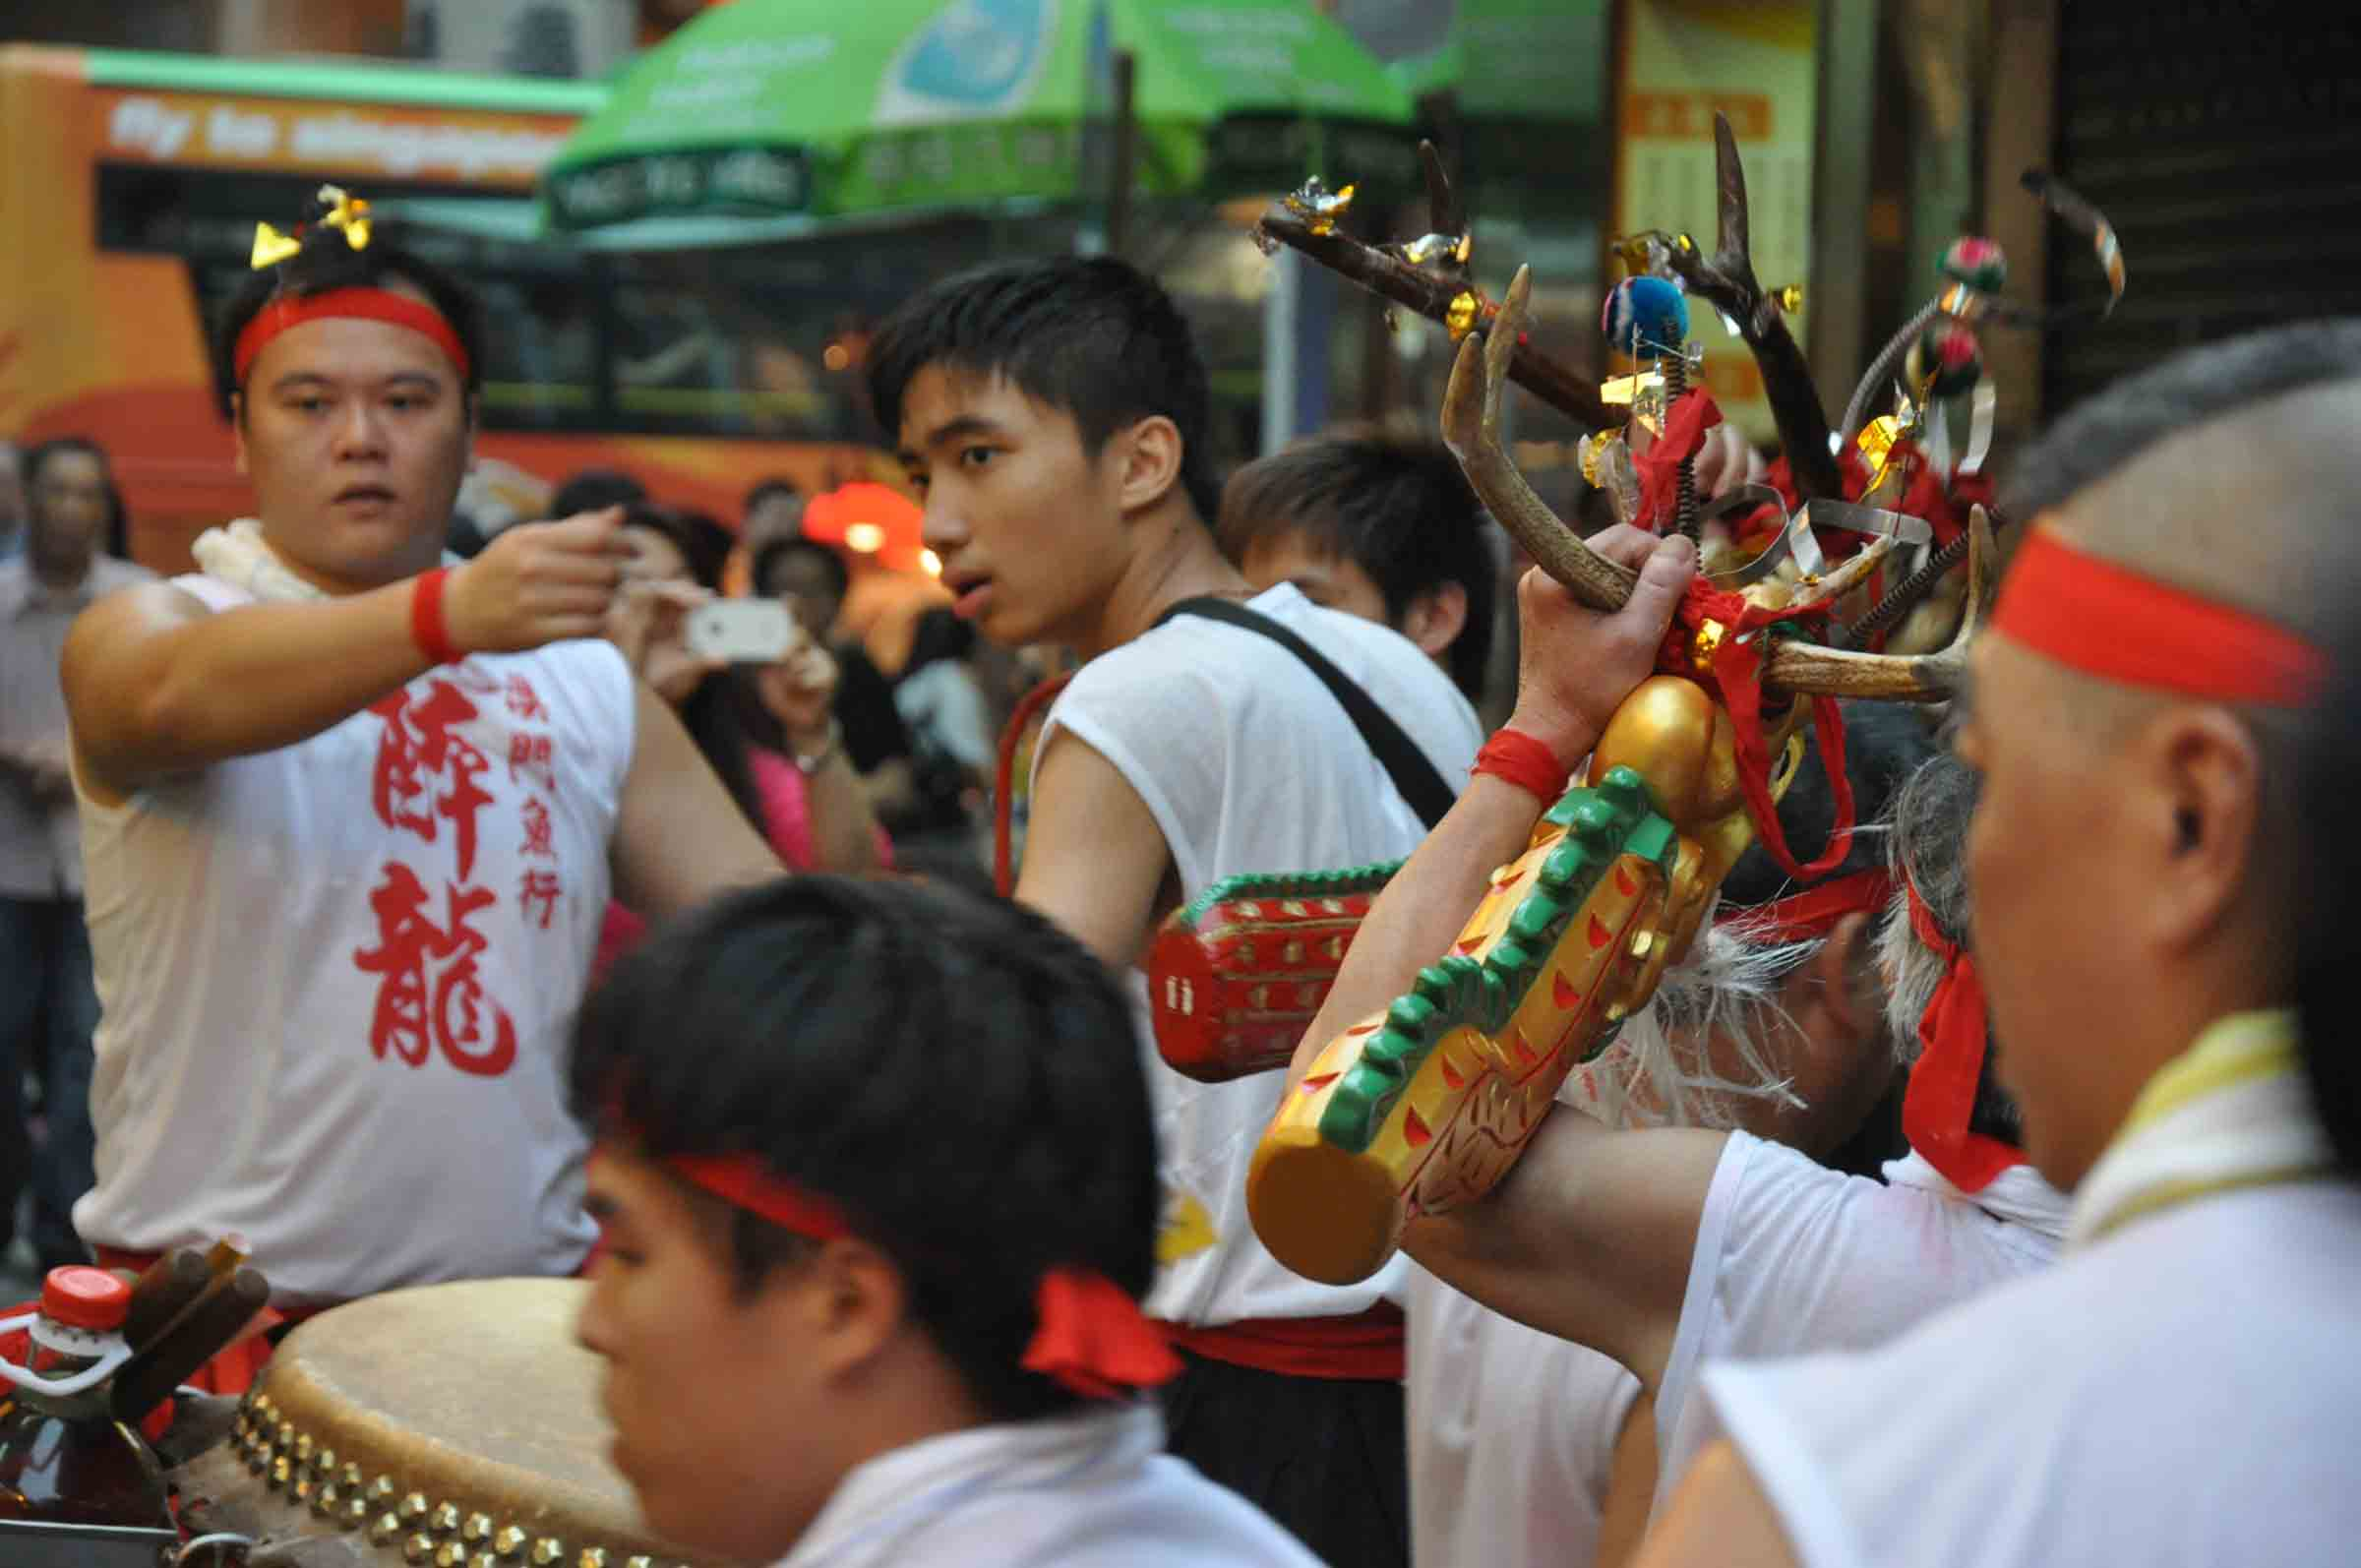 Feast of the Drunken Dragon Festival fisherman with drums